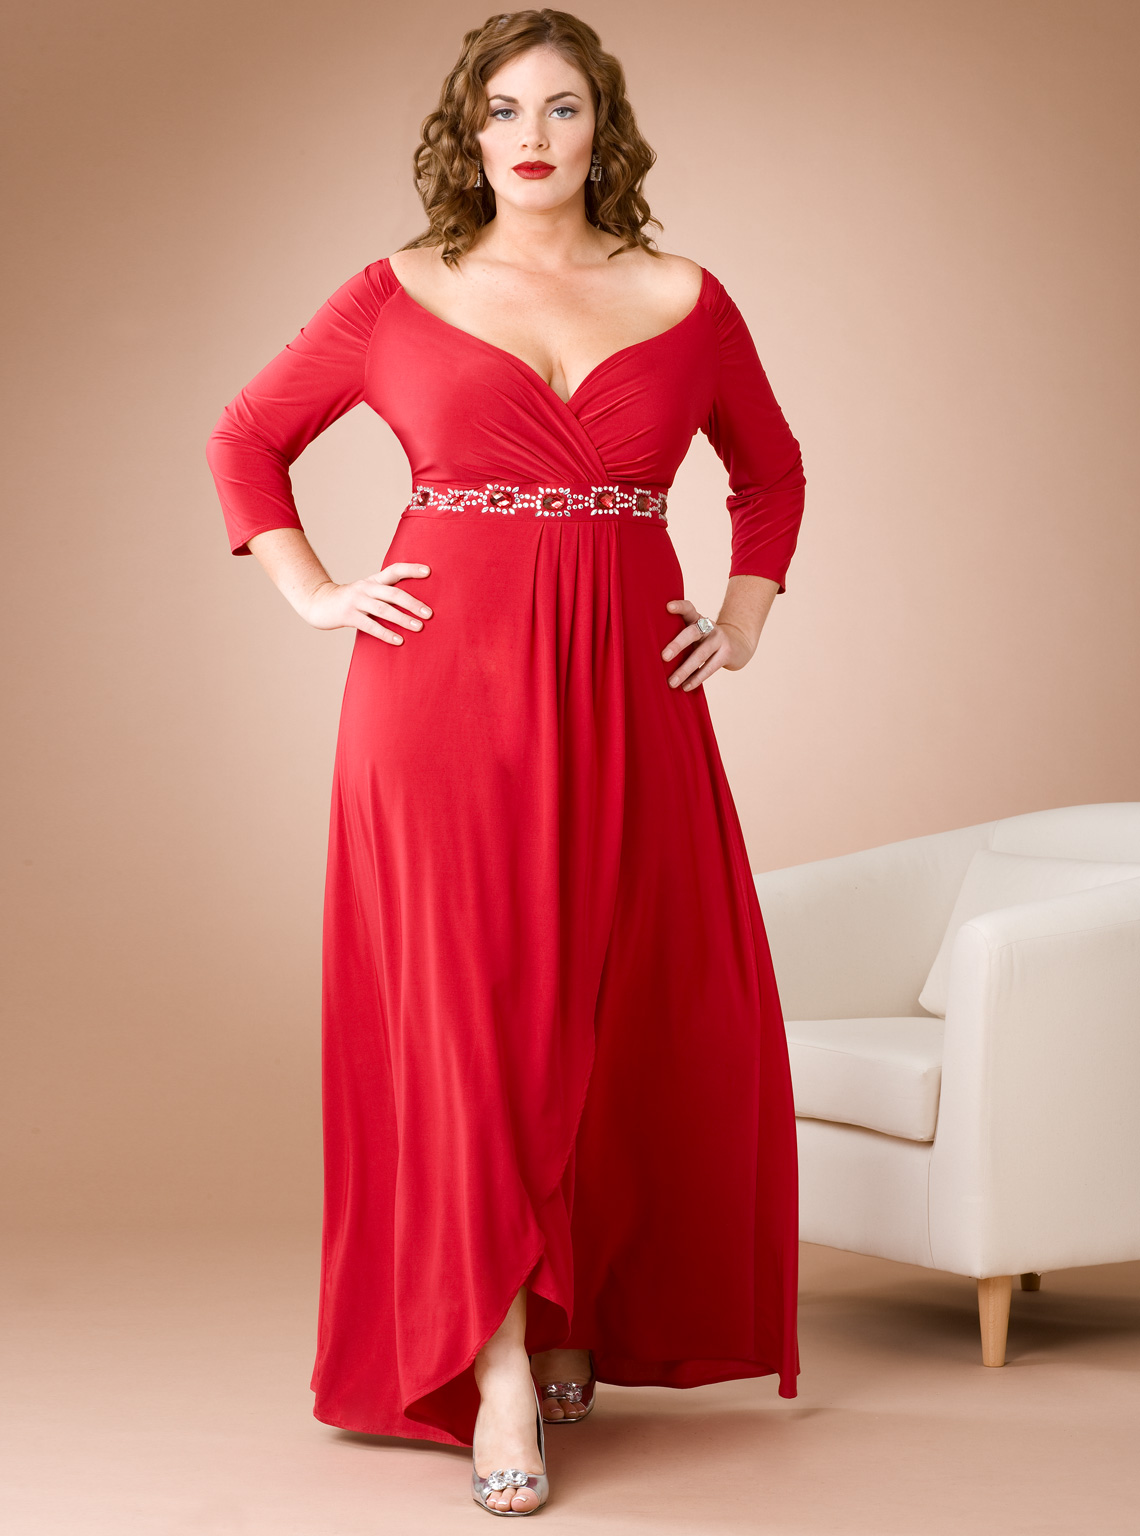 For pear-shaped ladies with larger hips and thighs, you can create a balanced look with a boat neckline; wrap style plus size maxi dresses will accentuate your natural waistline to flatter your figure.